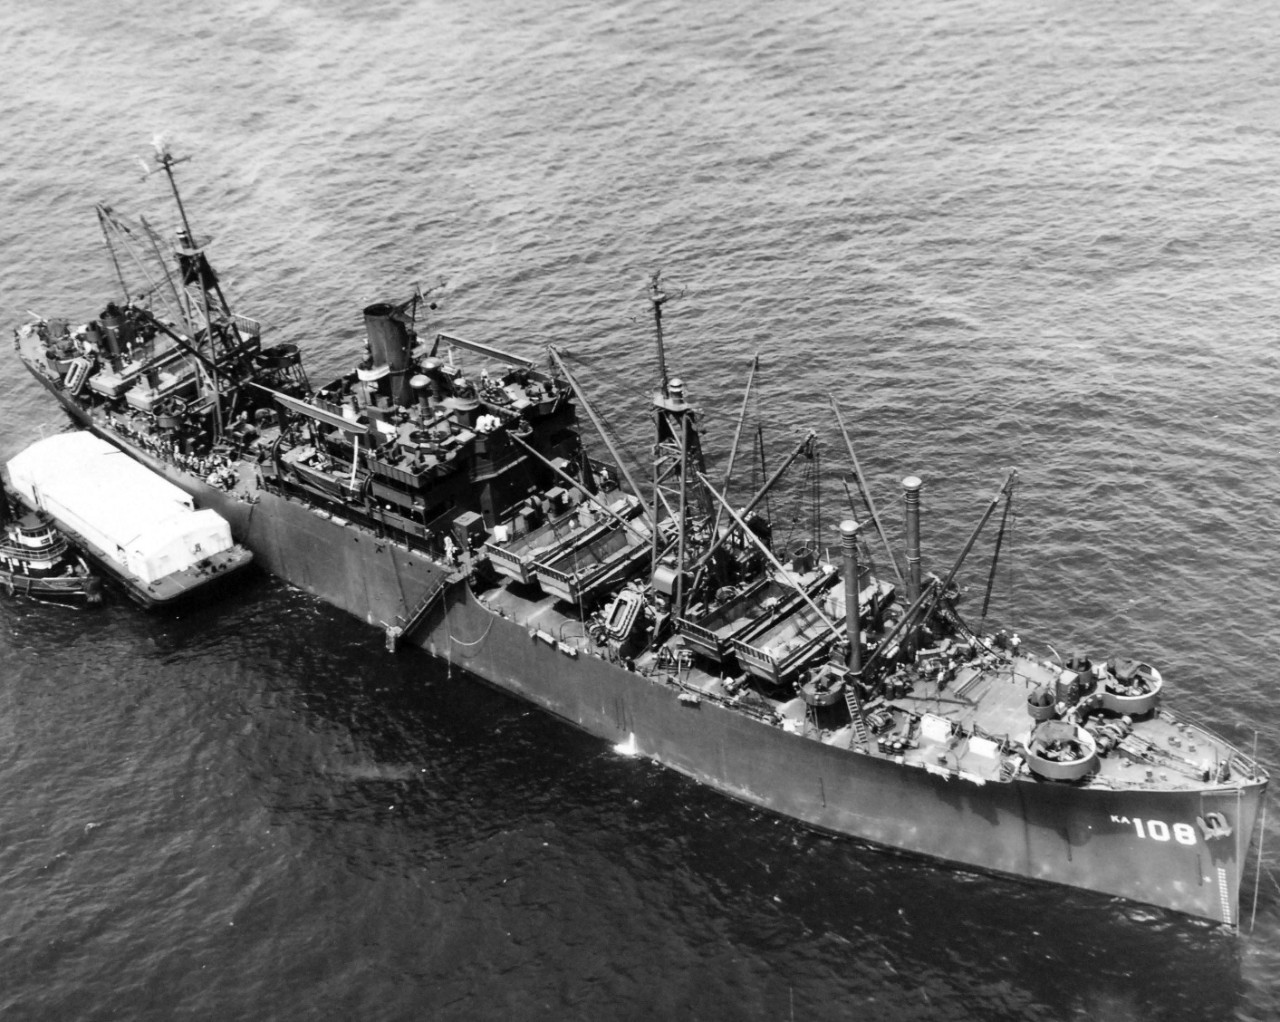 80-G-324142:  USS Washburn (AKA-108), May 1945.  Aerial at 300 feet.  Shown:  ¾ bow view.   Photographed by Floyd Bennett Field aircraft, May 21, 1945.  Official U.S. Navy Photograph, now in the collections of the National Archives.  (2017/11/22).  Note, photograph is curved.